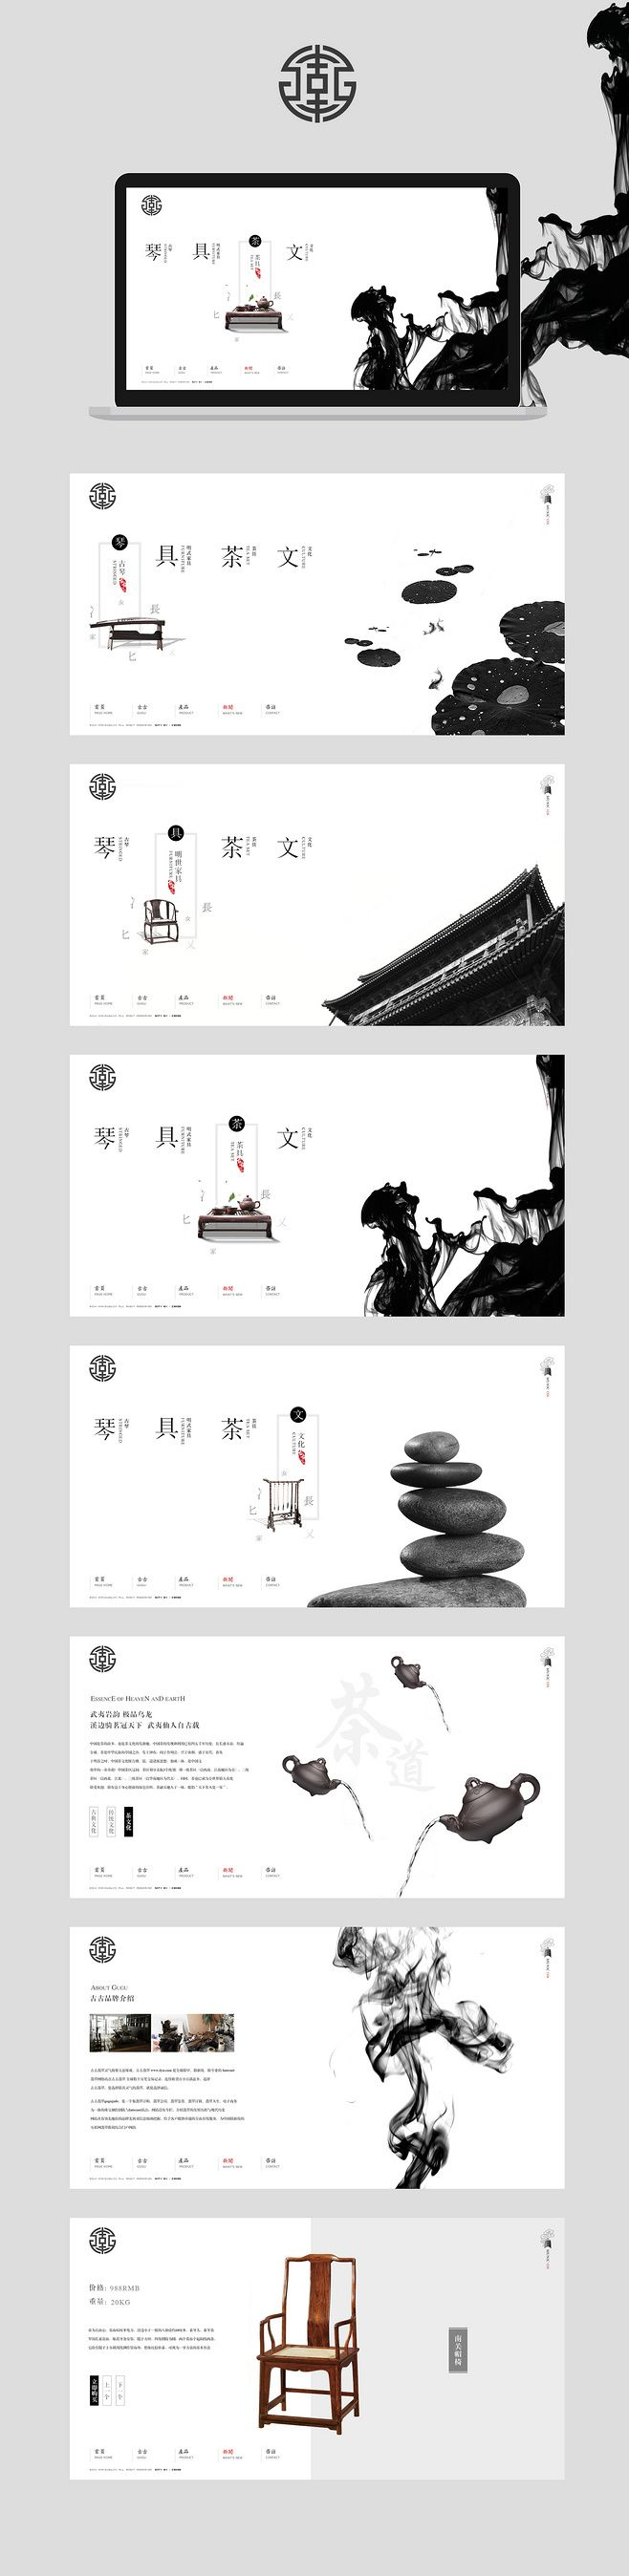 Chinese minimalist design portfolio | #graphic #design